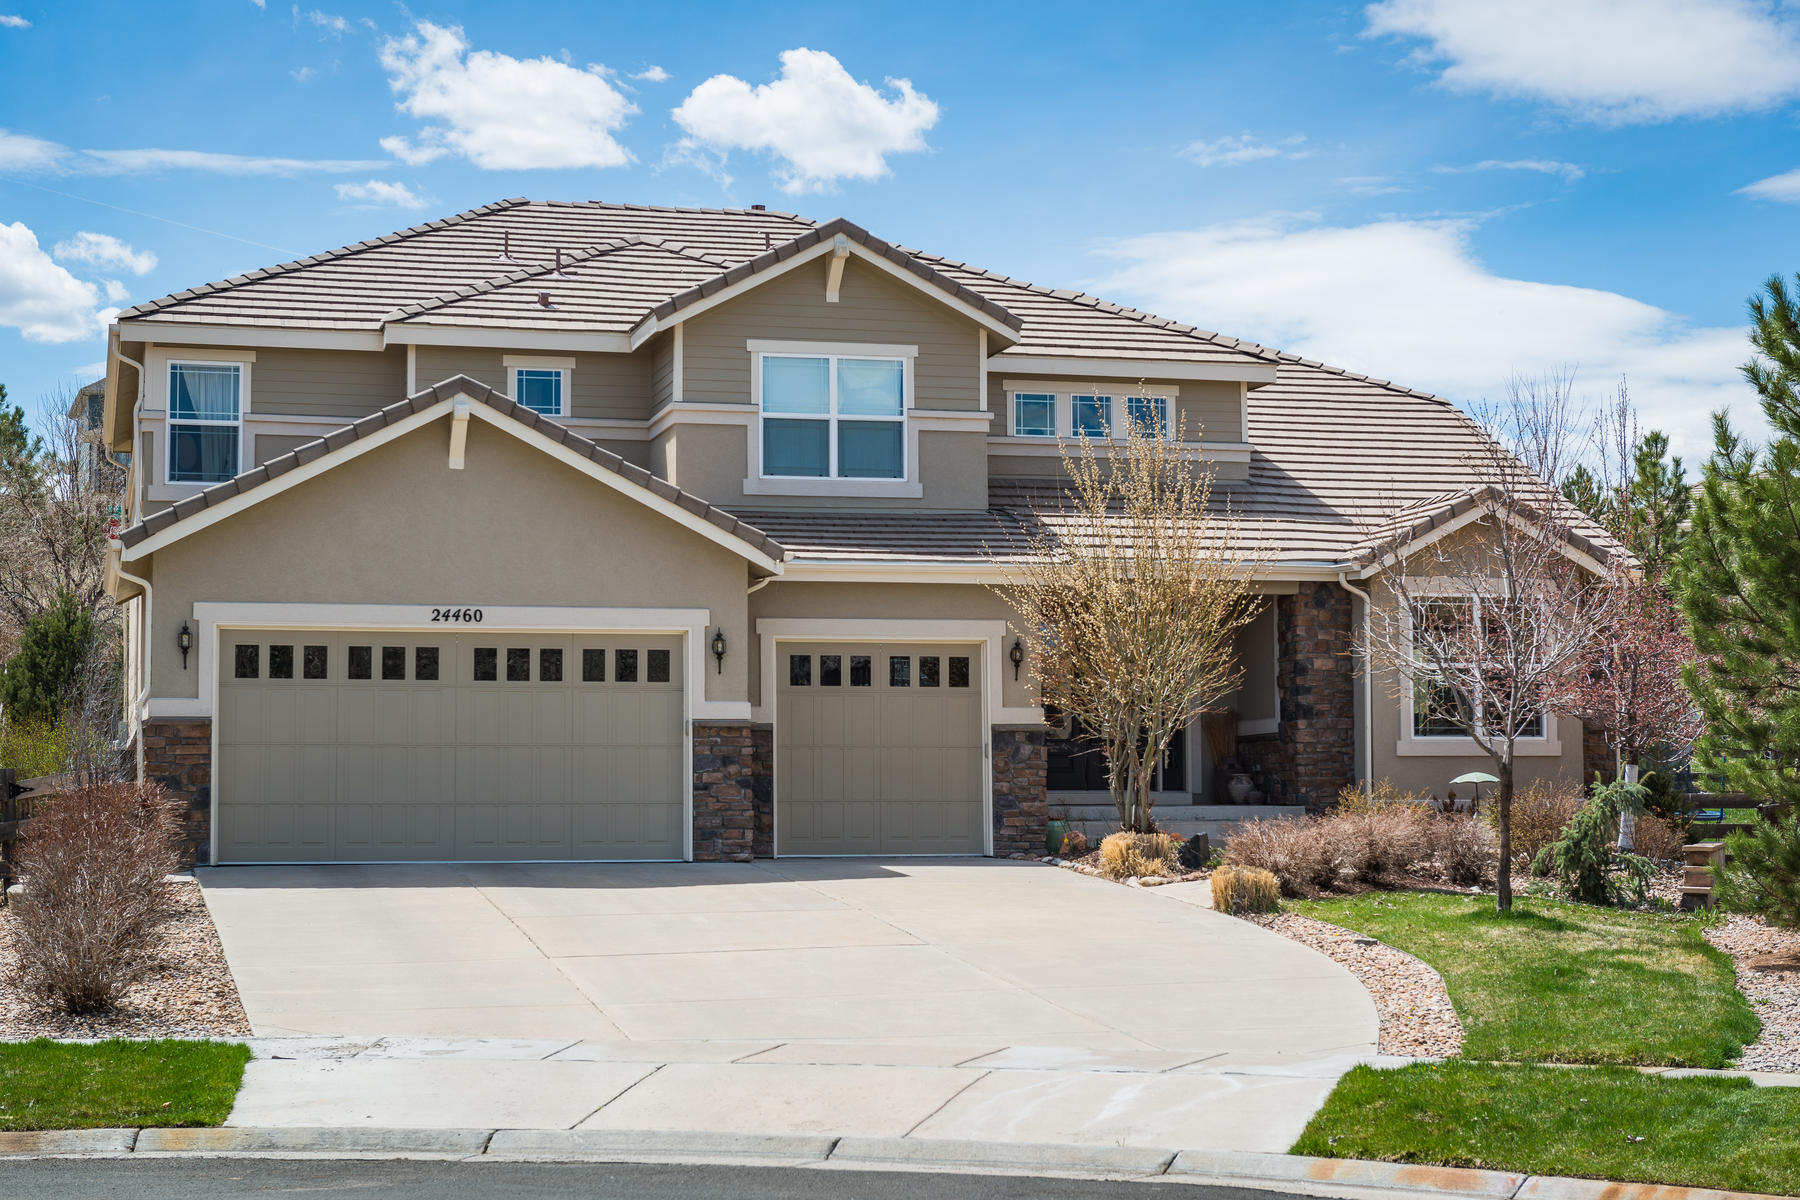 Single Family Homes for Sale at Amazing Semi-Custom Home in Highly Sought After Tallyn's Reach 24460 E Moraine Place Aurora, Colorado 80016 United States